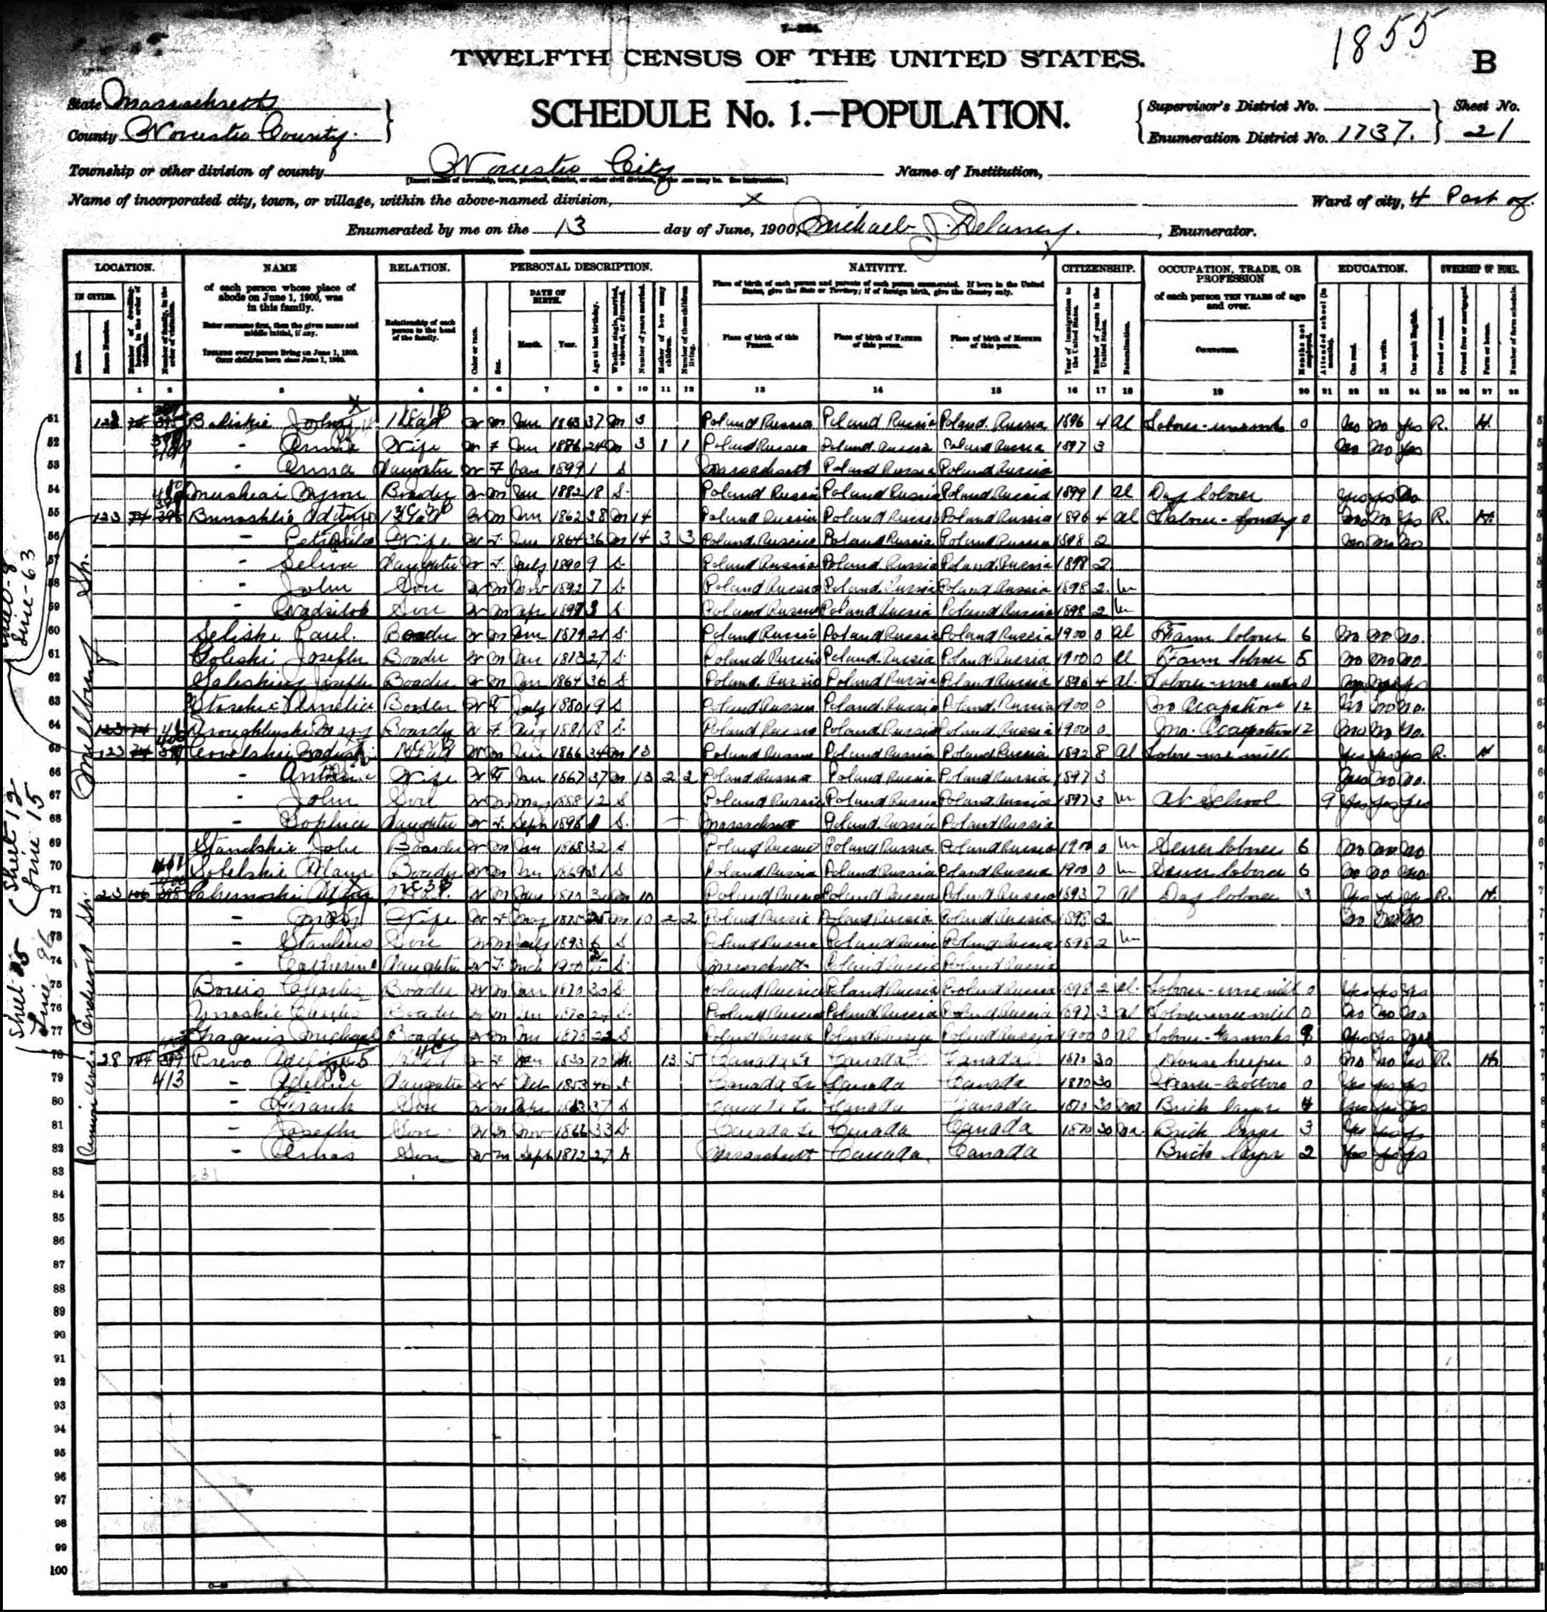 1900 US Federal Census Record for Adam Bonislawski